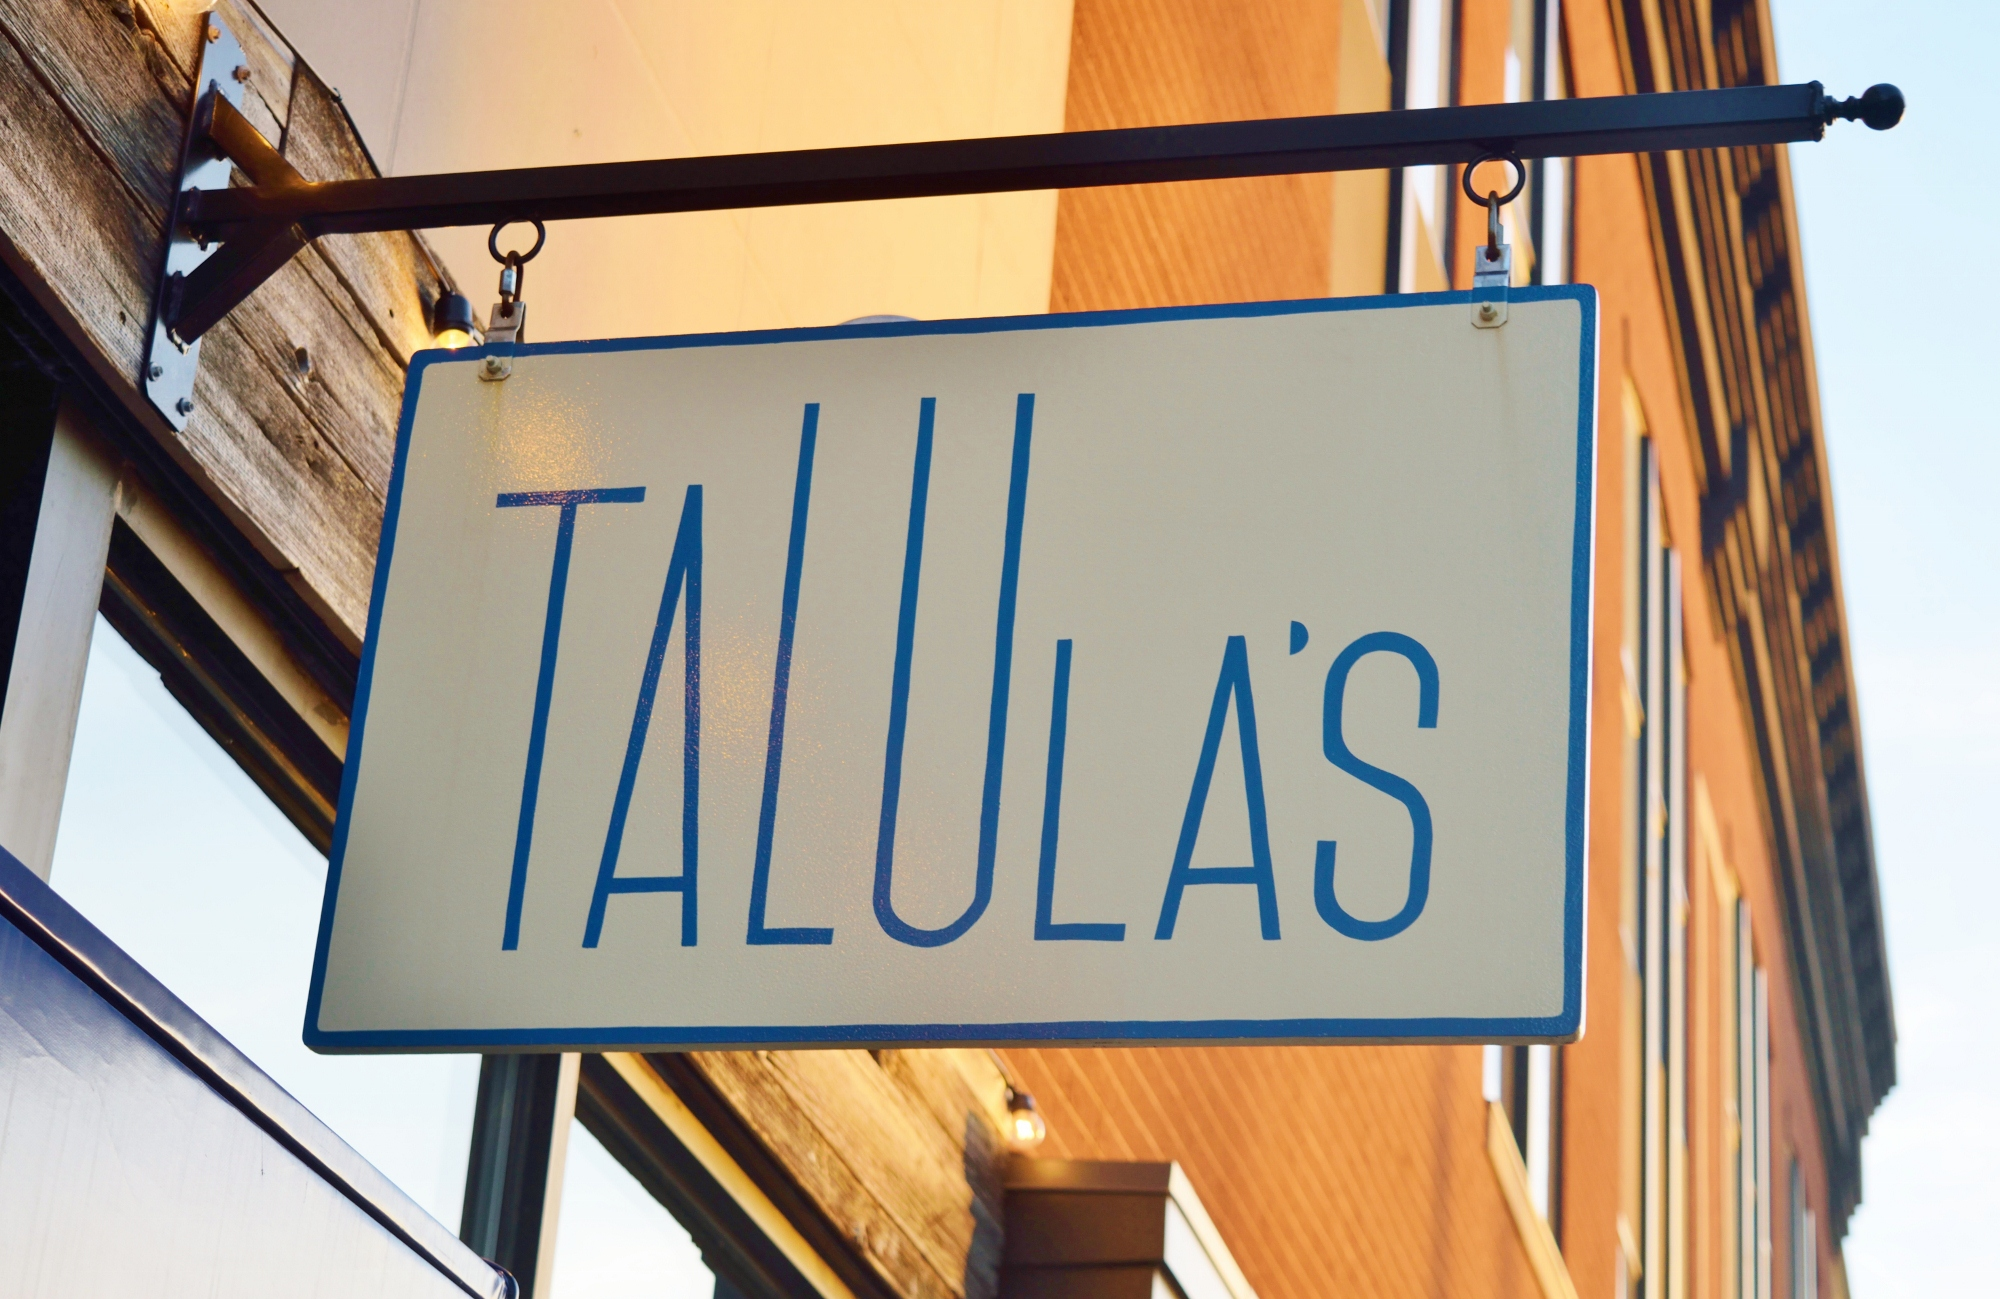 Beer nerds and pizza nerds unite at Talula's!